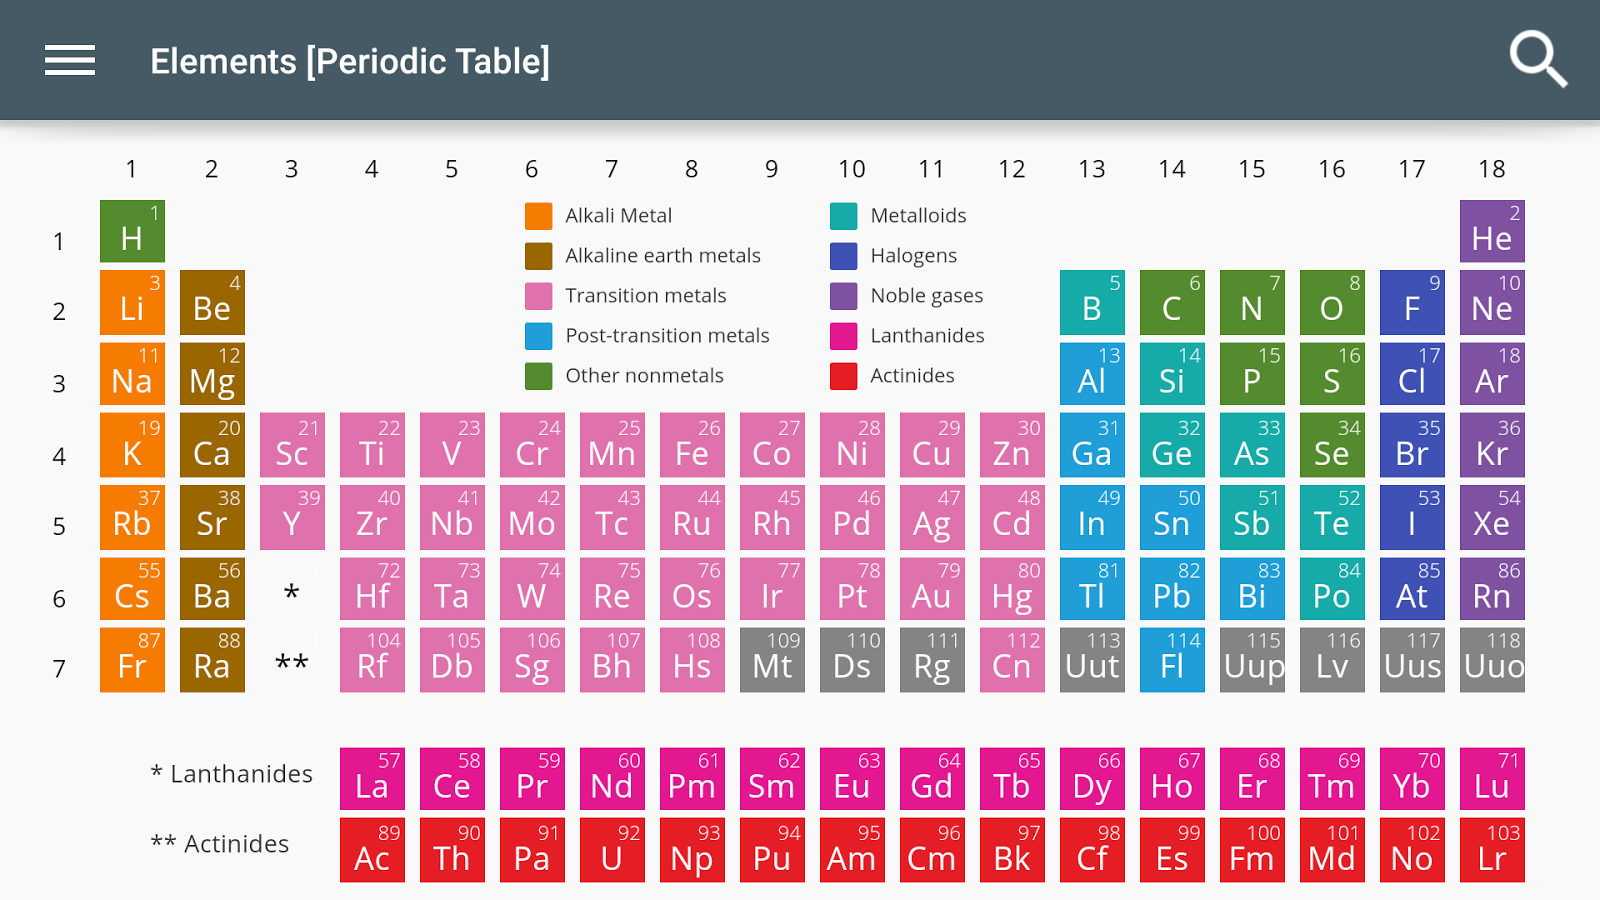 Elements periodic table 10 apk download android education apps elements periodic table 10 screenshot 1 urtaz Image collections